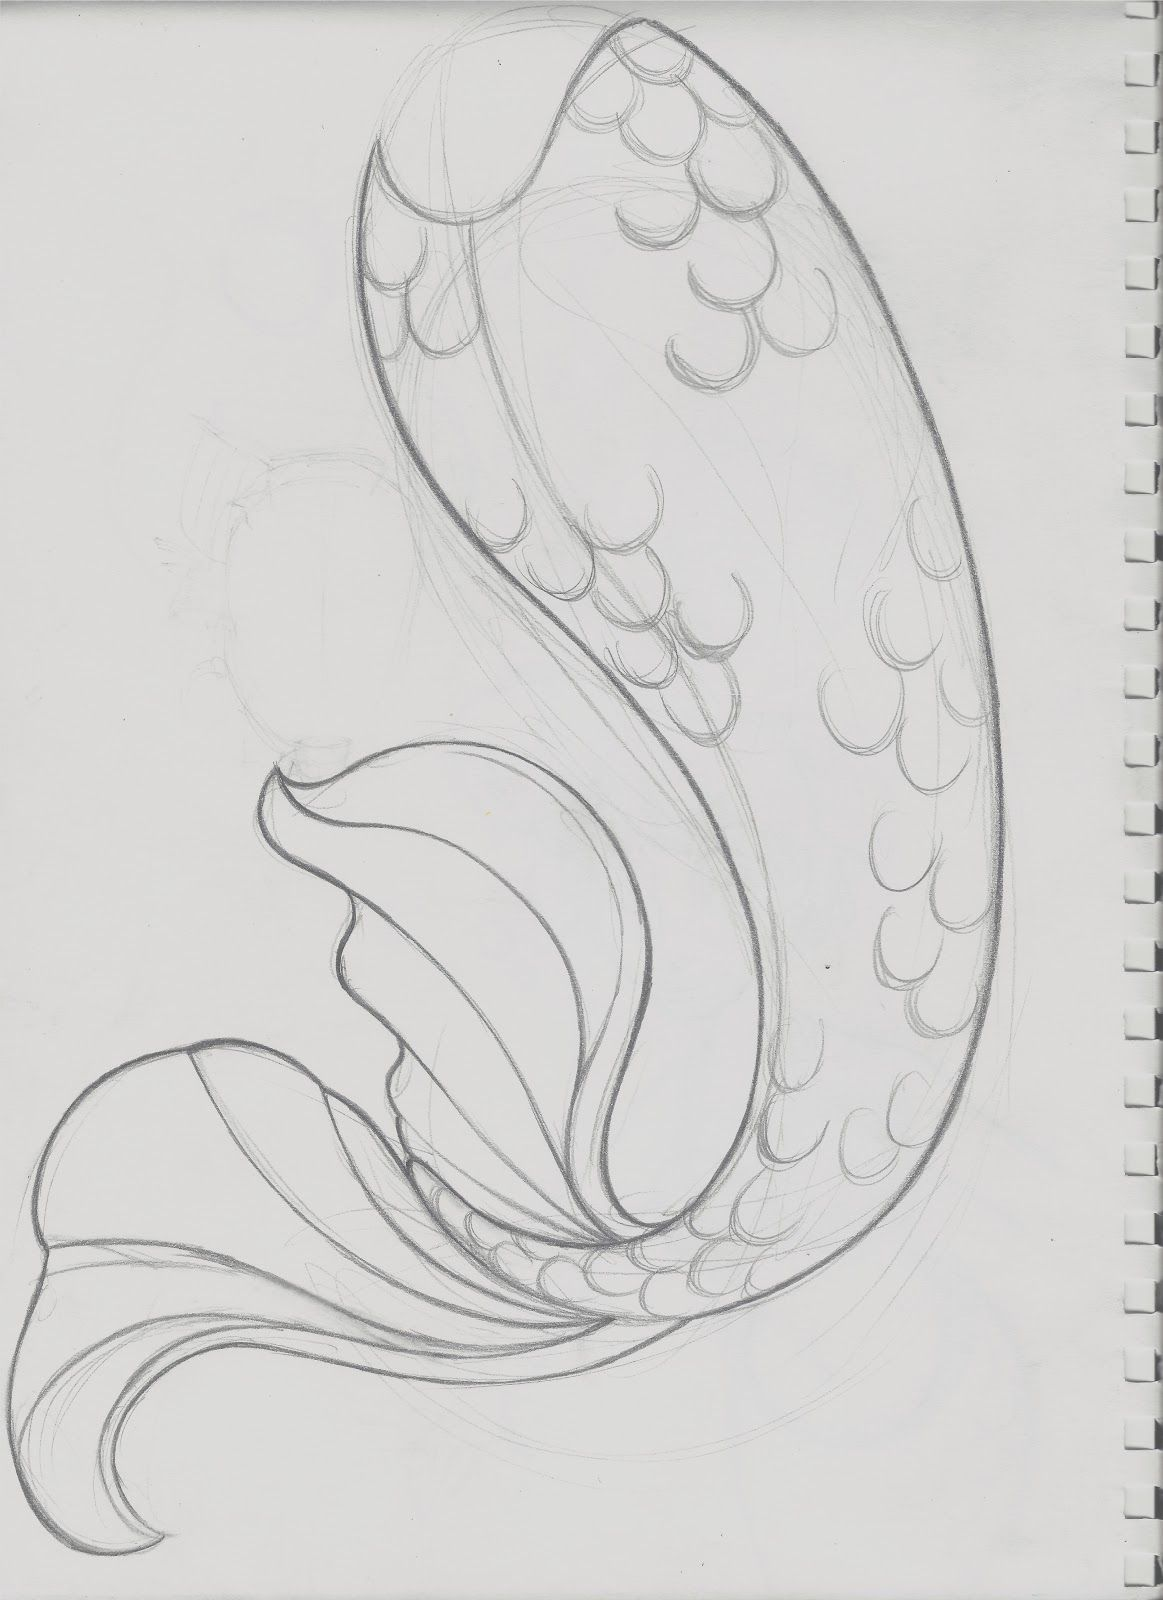 How to Draw Tail Shape Mermaids: Easy and Fun Step-by-Step